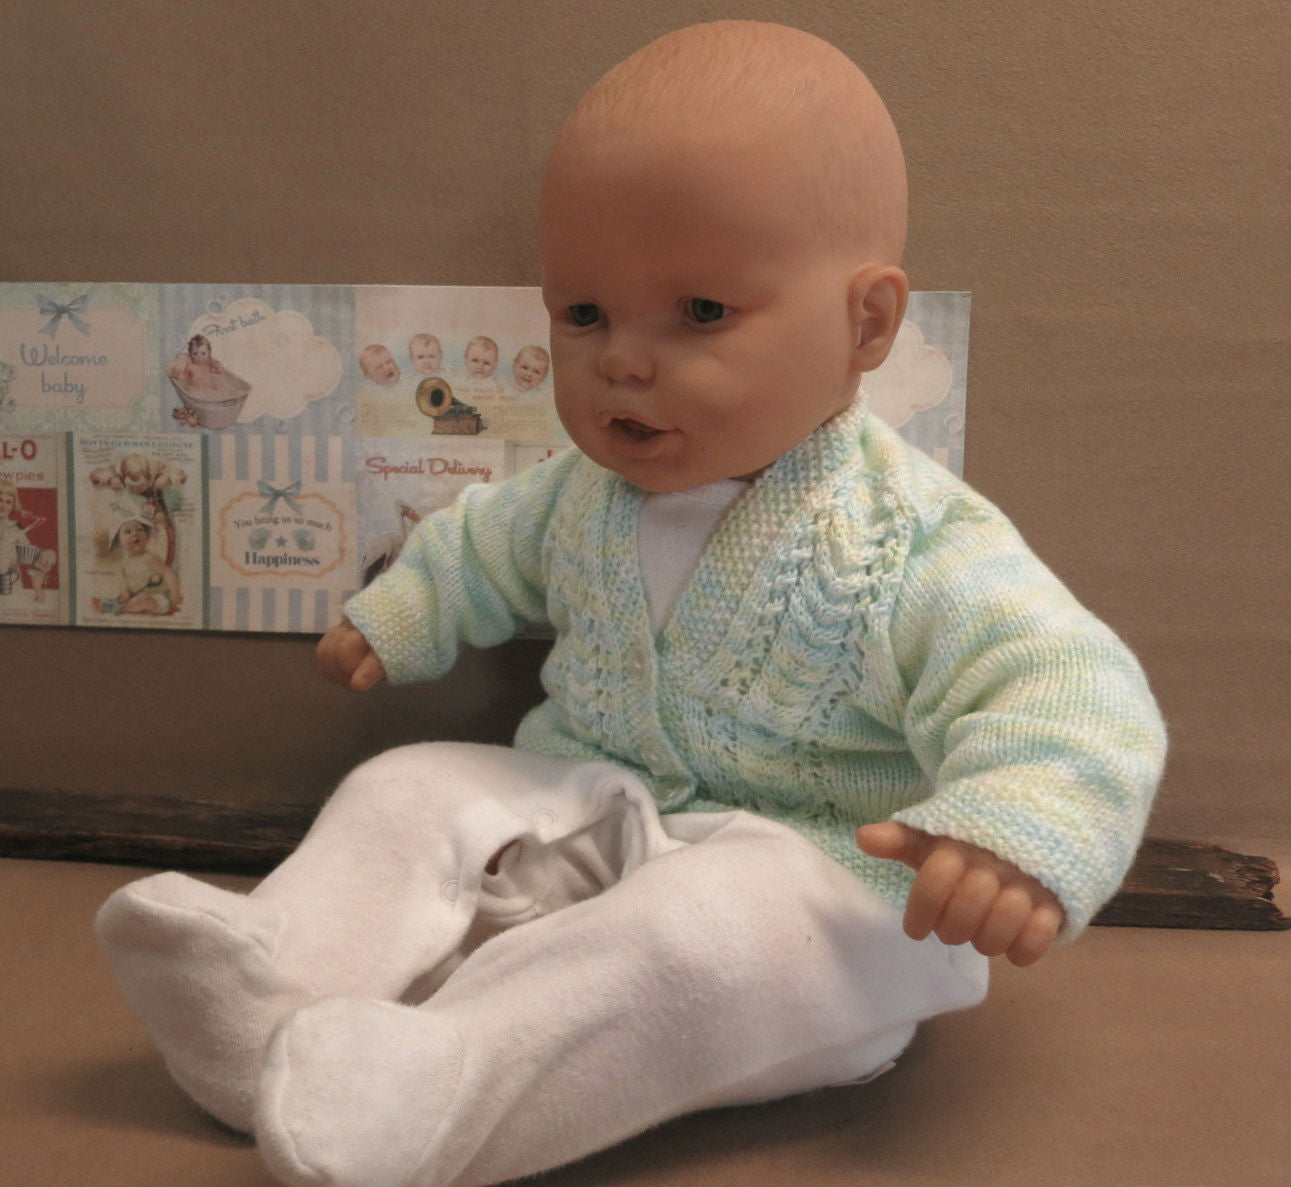 Baby-Jacket-in-Pale-Mint-Nchanted-Gifts